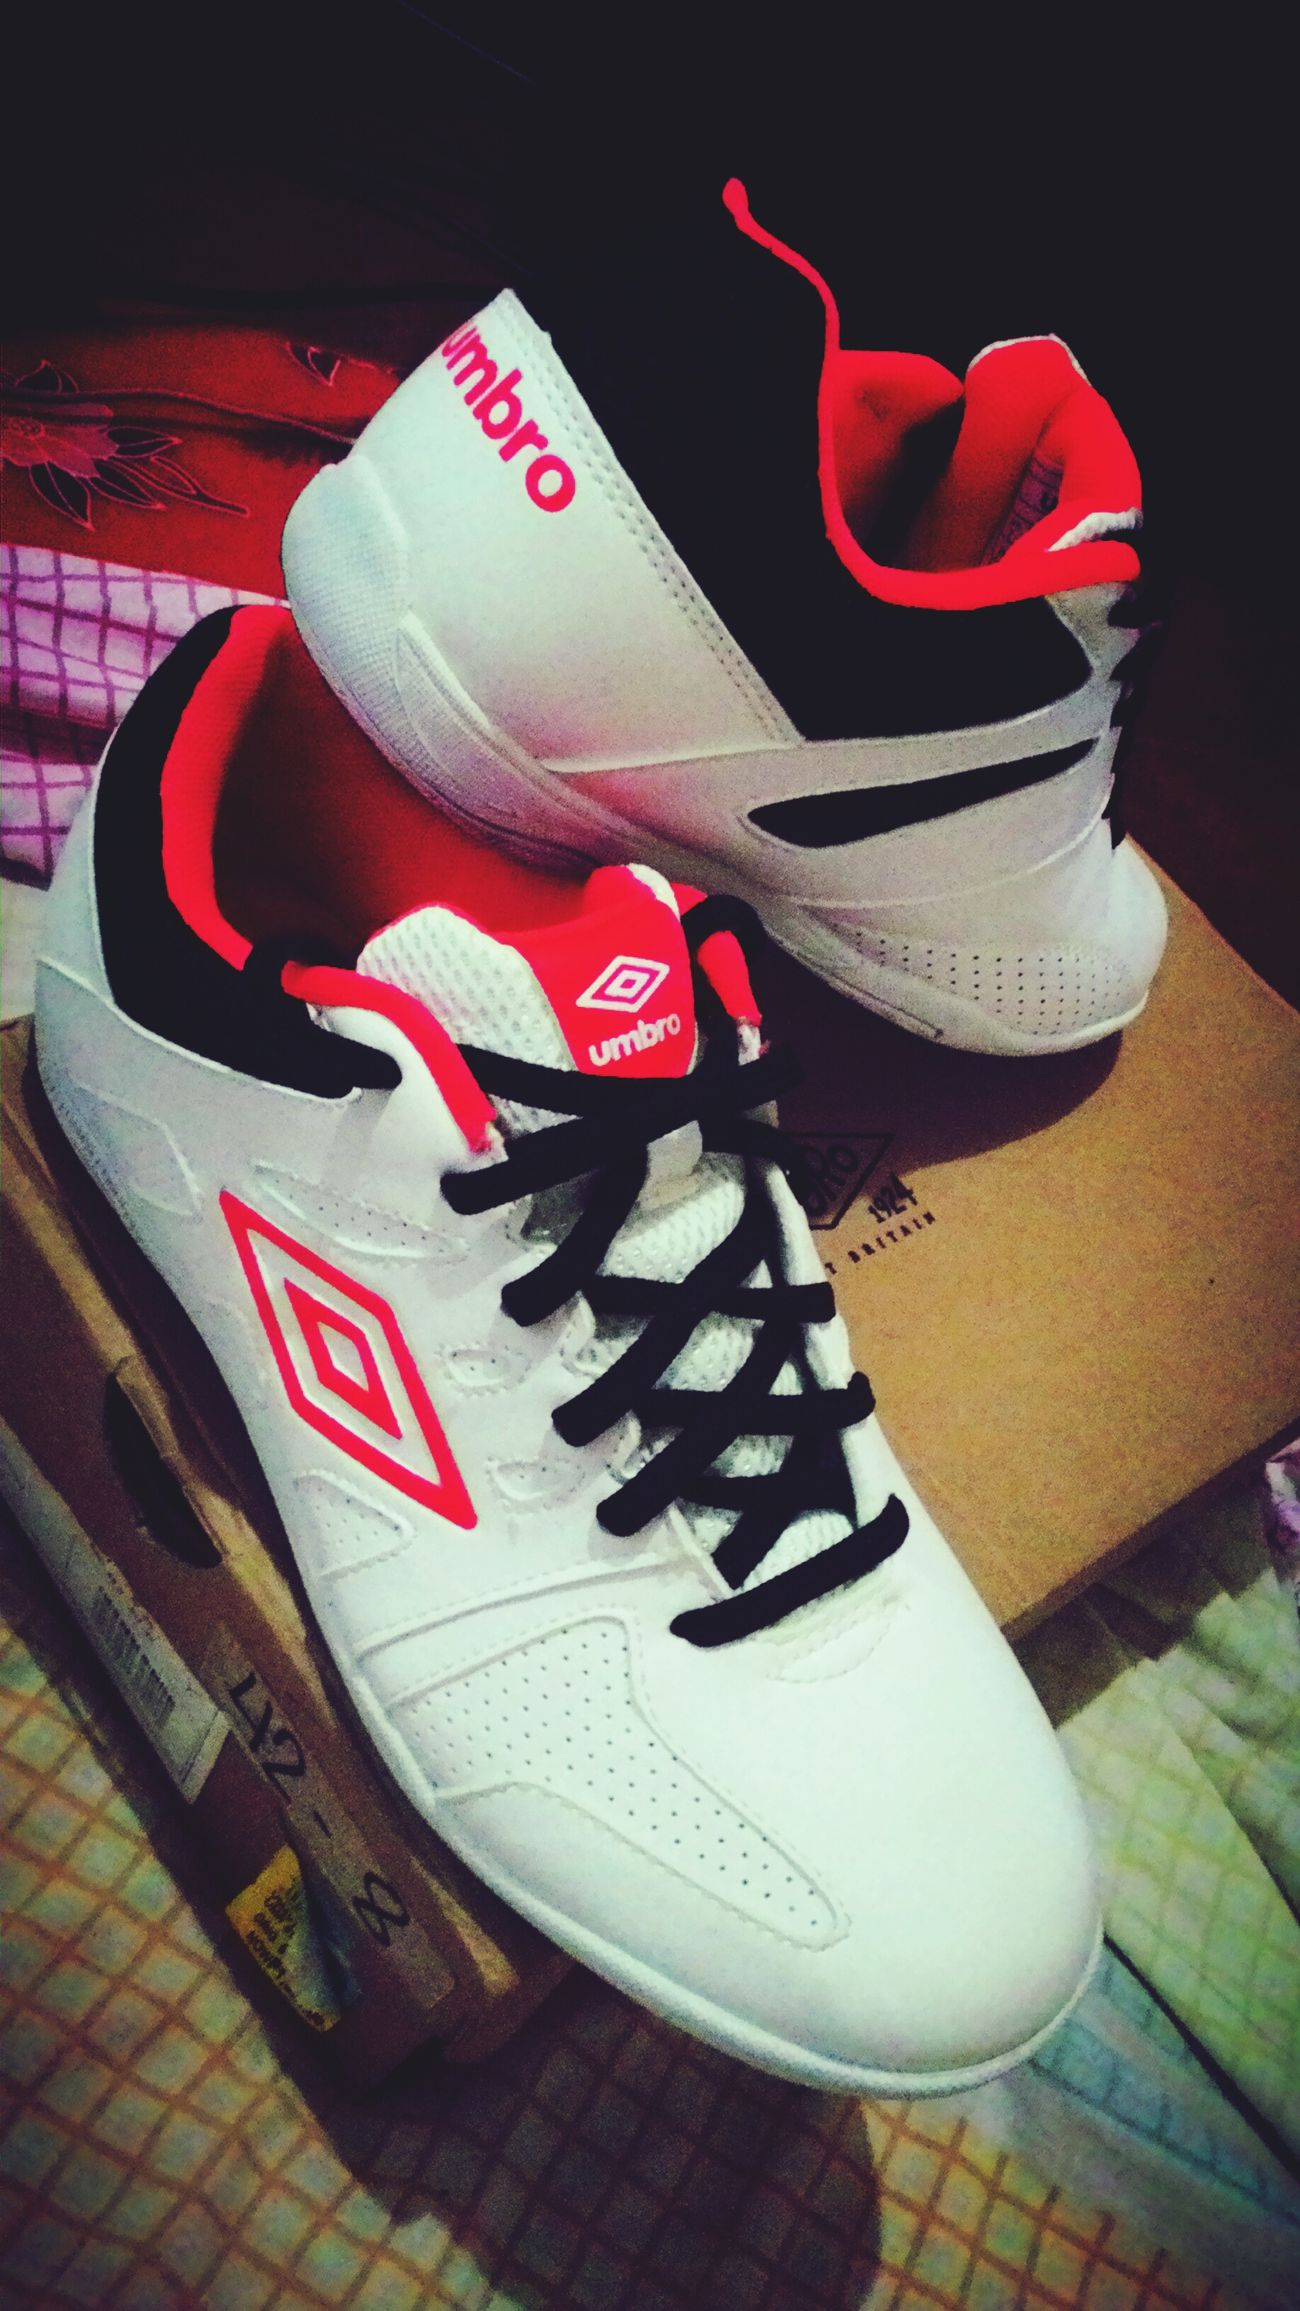 Thank u baby!!!😁😁😁 SupportiveGirlfriend Spoiledkiddo Umbro